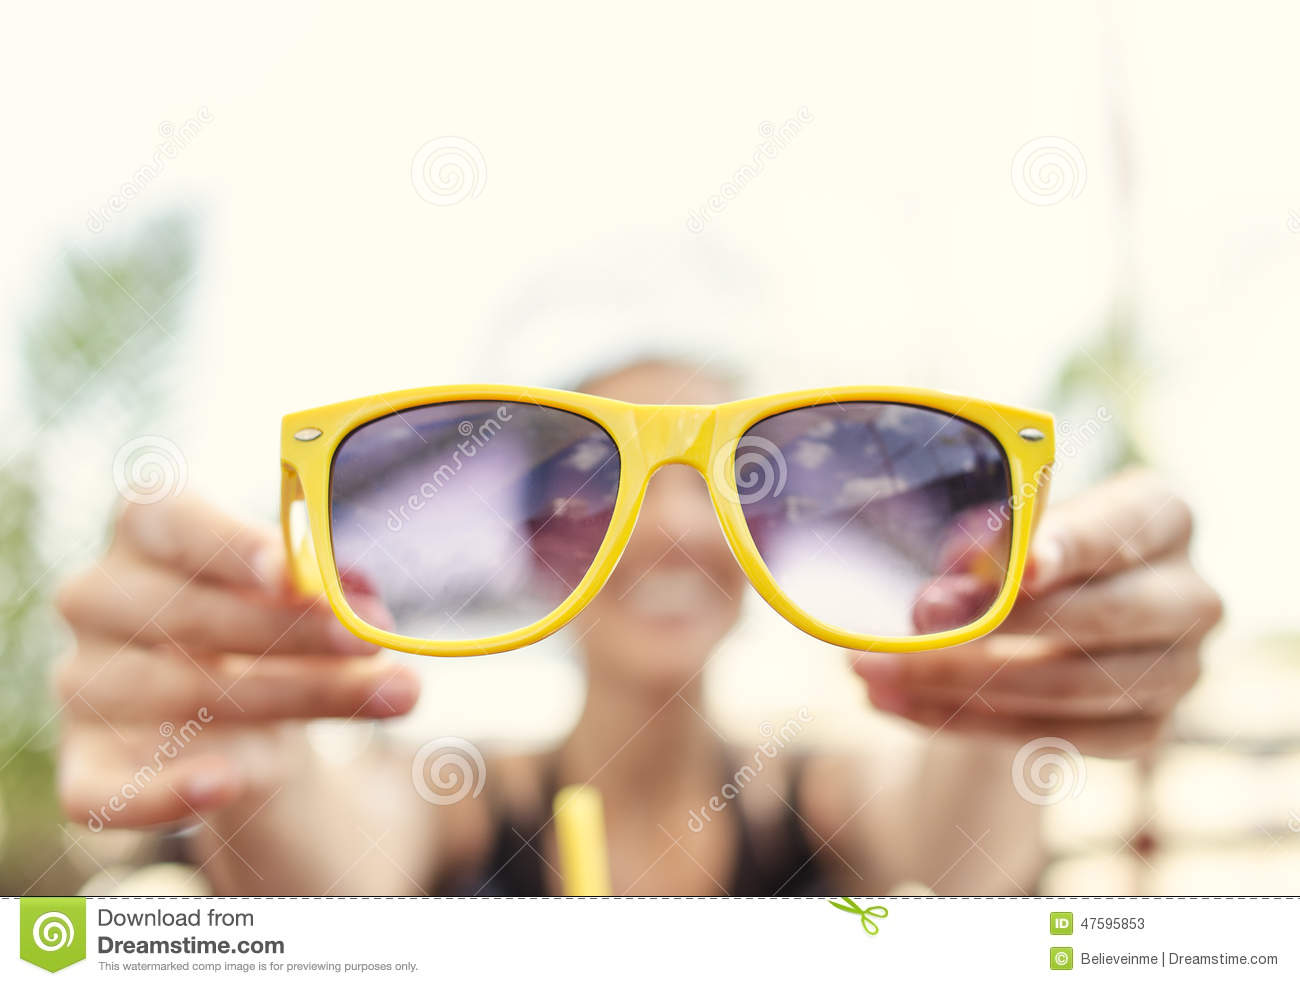 Have of blond teen holding sunglasses just, has